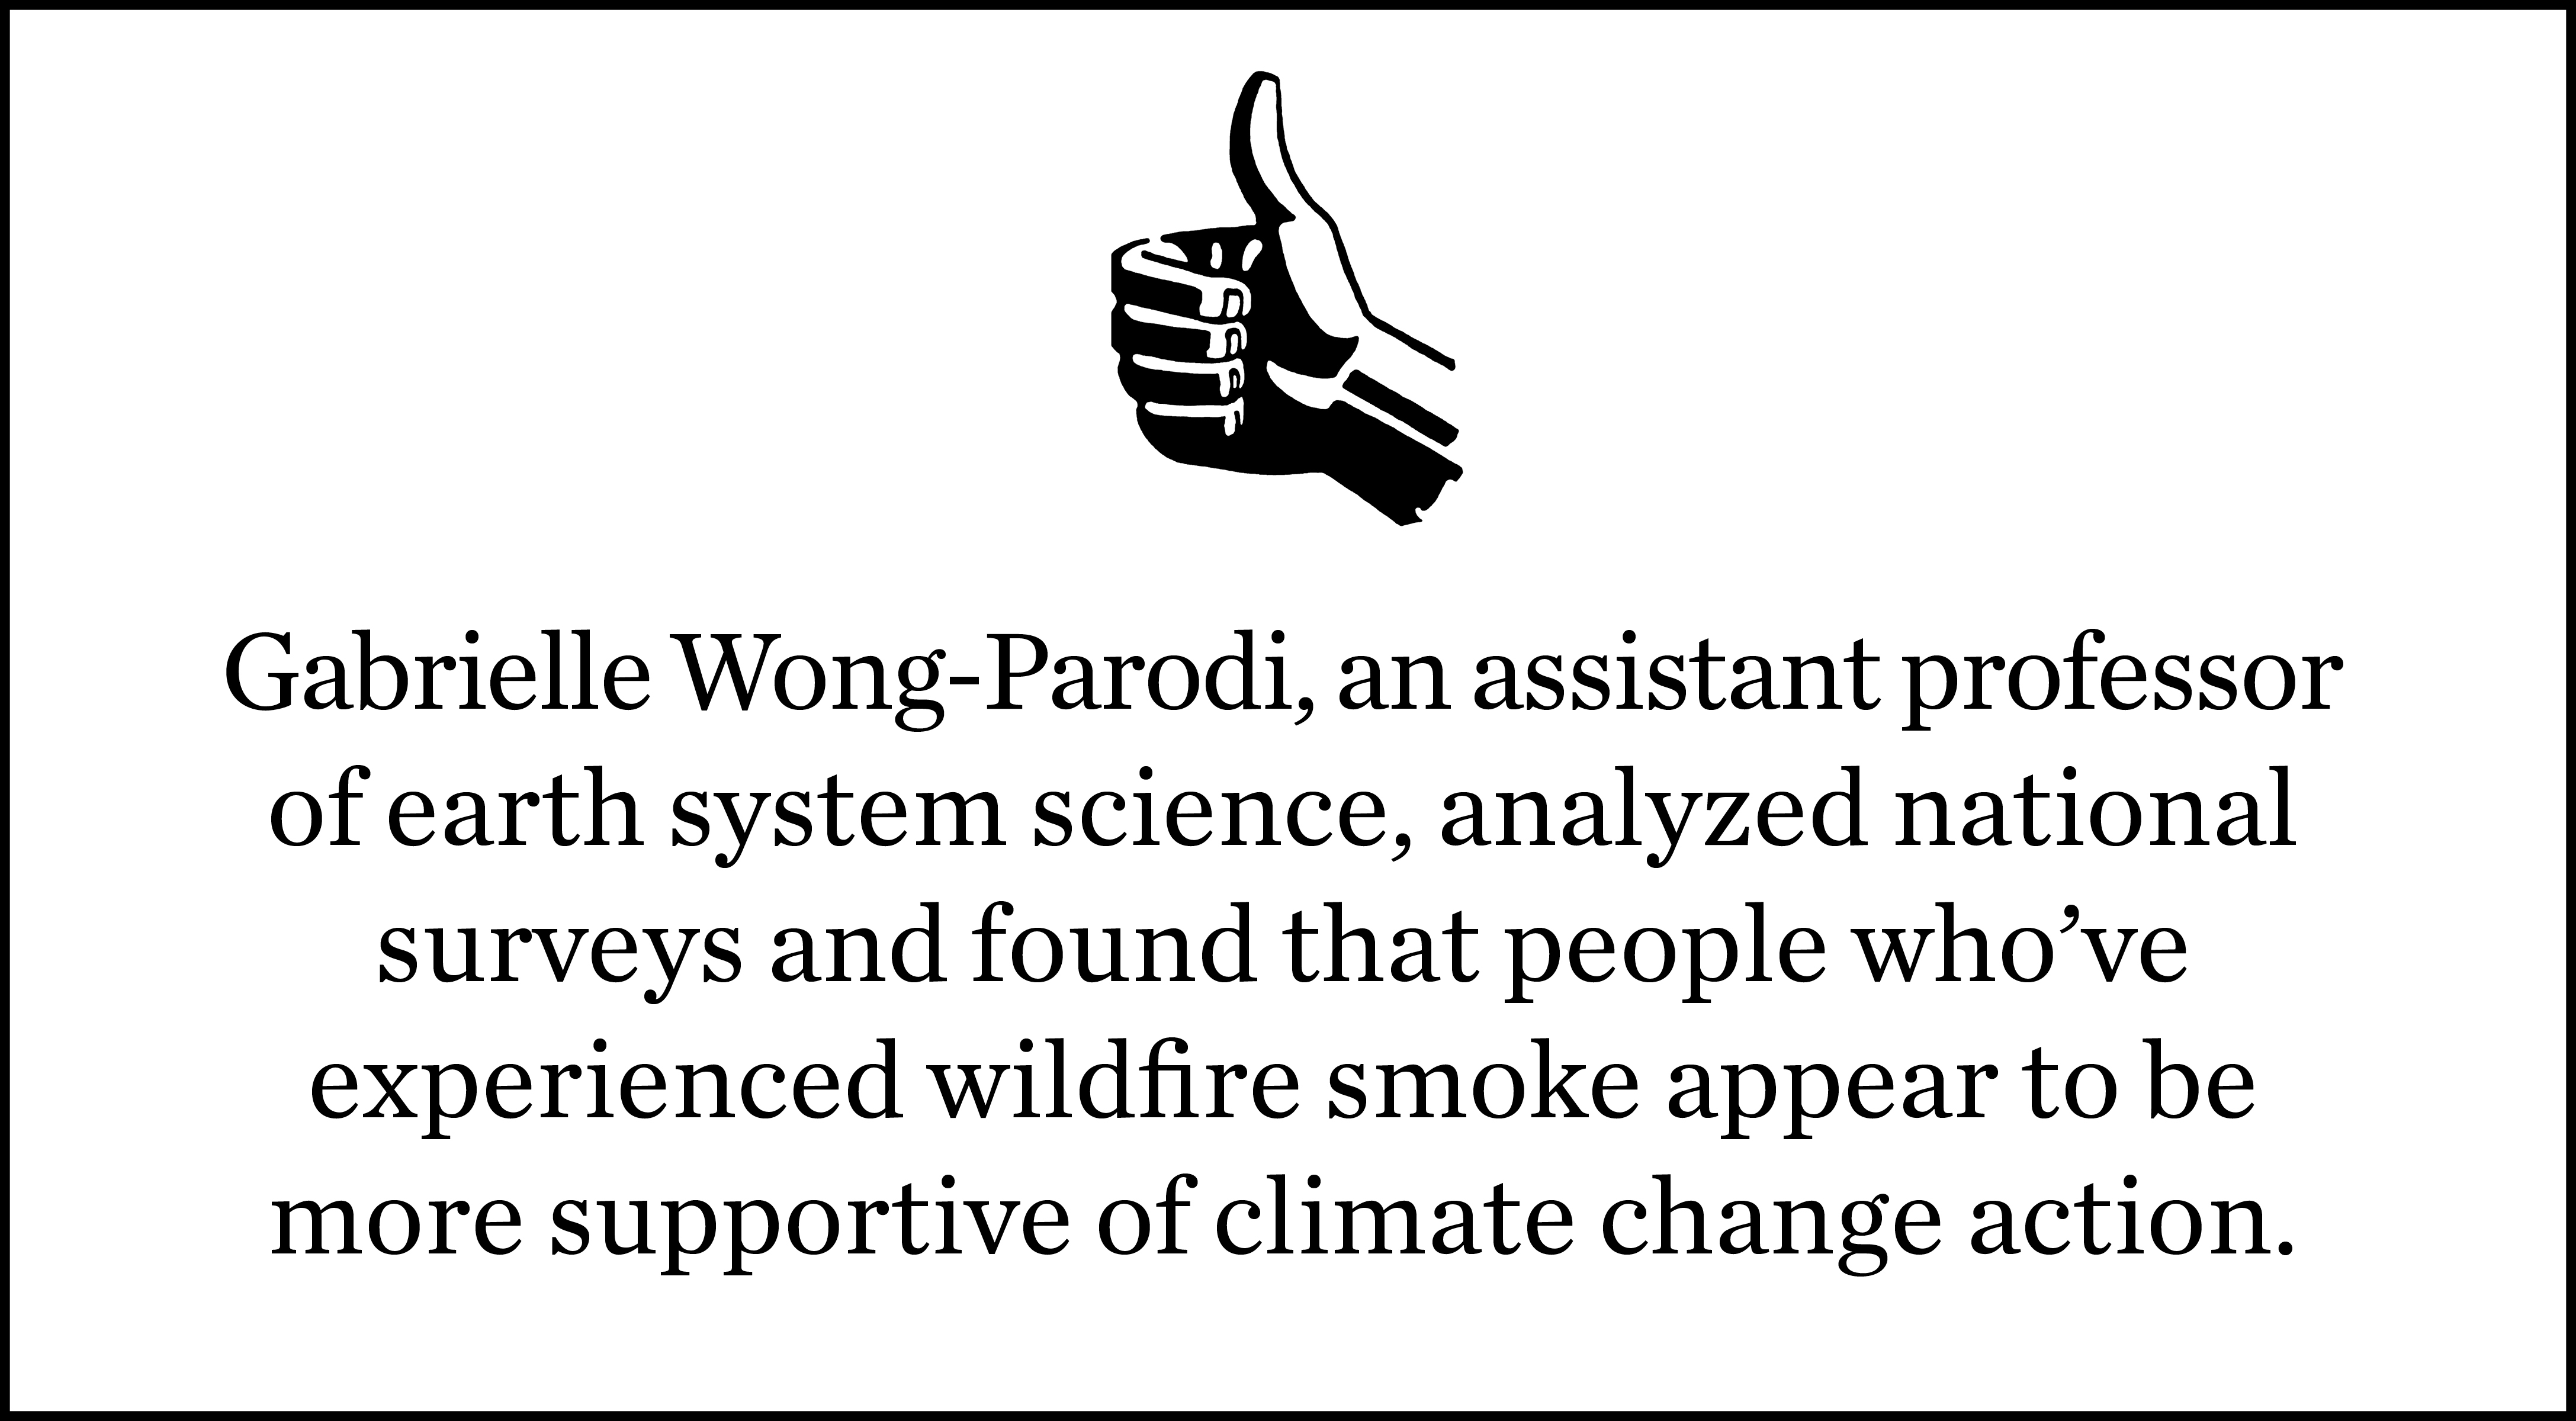 Thumbs up with factoid from Gabrielle Wong-Parodi, an assistant professor of earth system science, who analyzed national surveys and found that people who have experienced wildfire smoke pollution are more supportive of climate change action.